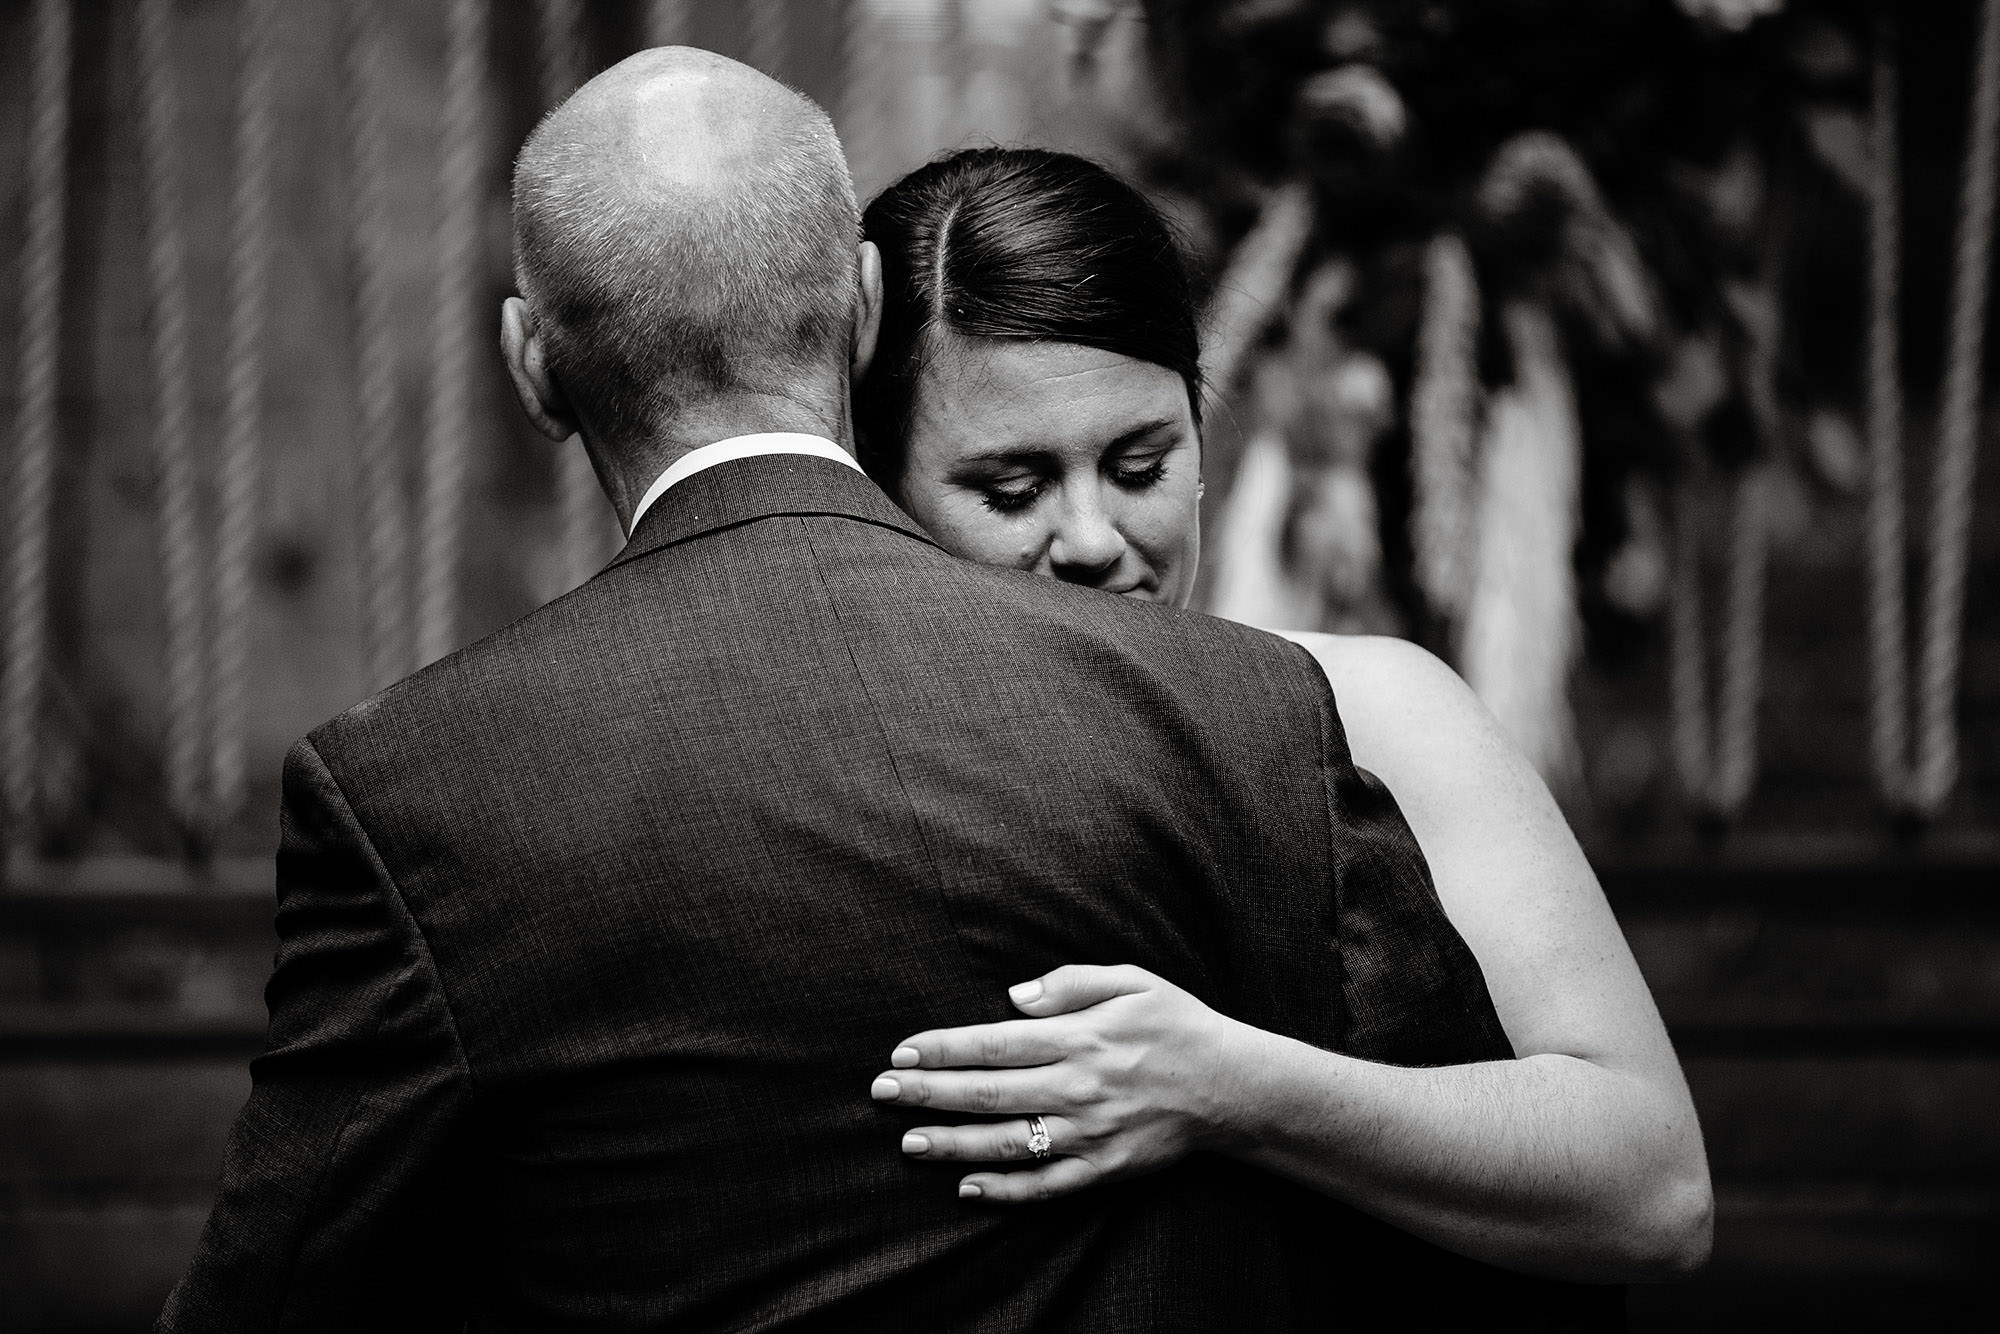 SRV Boston Wedding  I  The bride dances with her father during the wedding ceremony in Boston, MA.